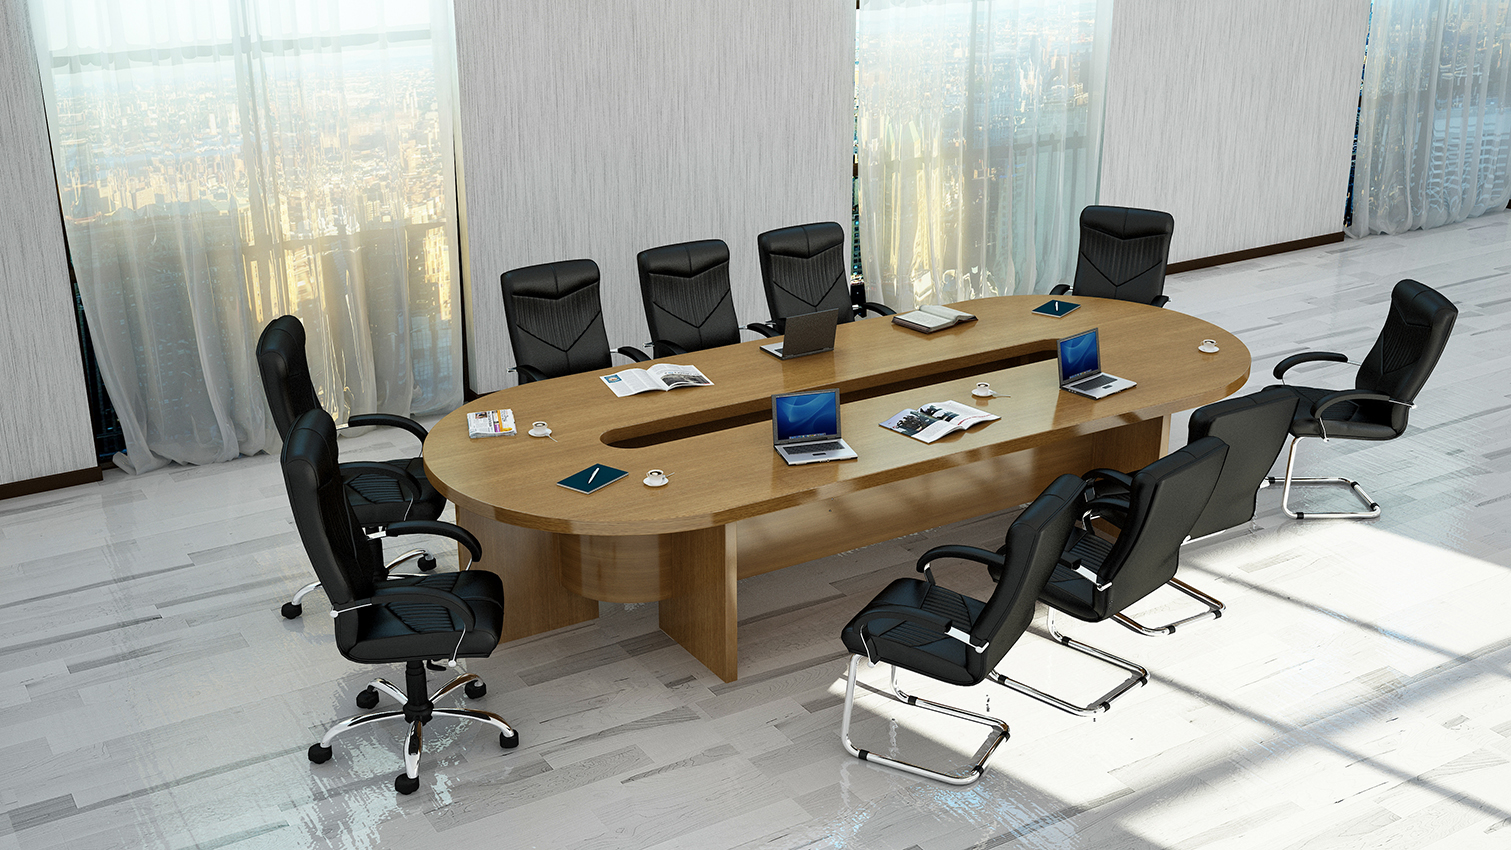 furniture for meetings-front